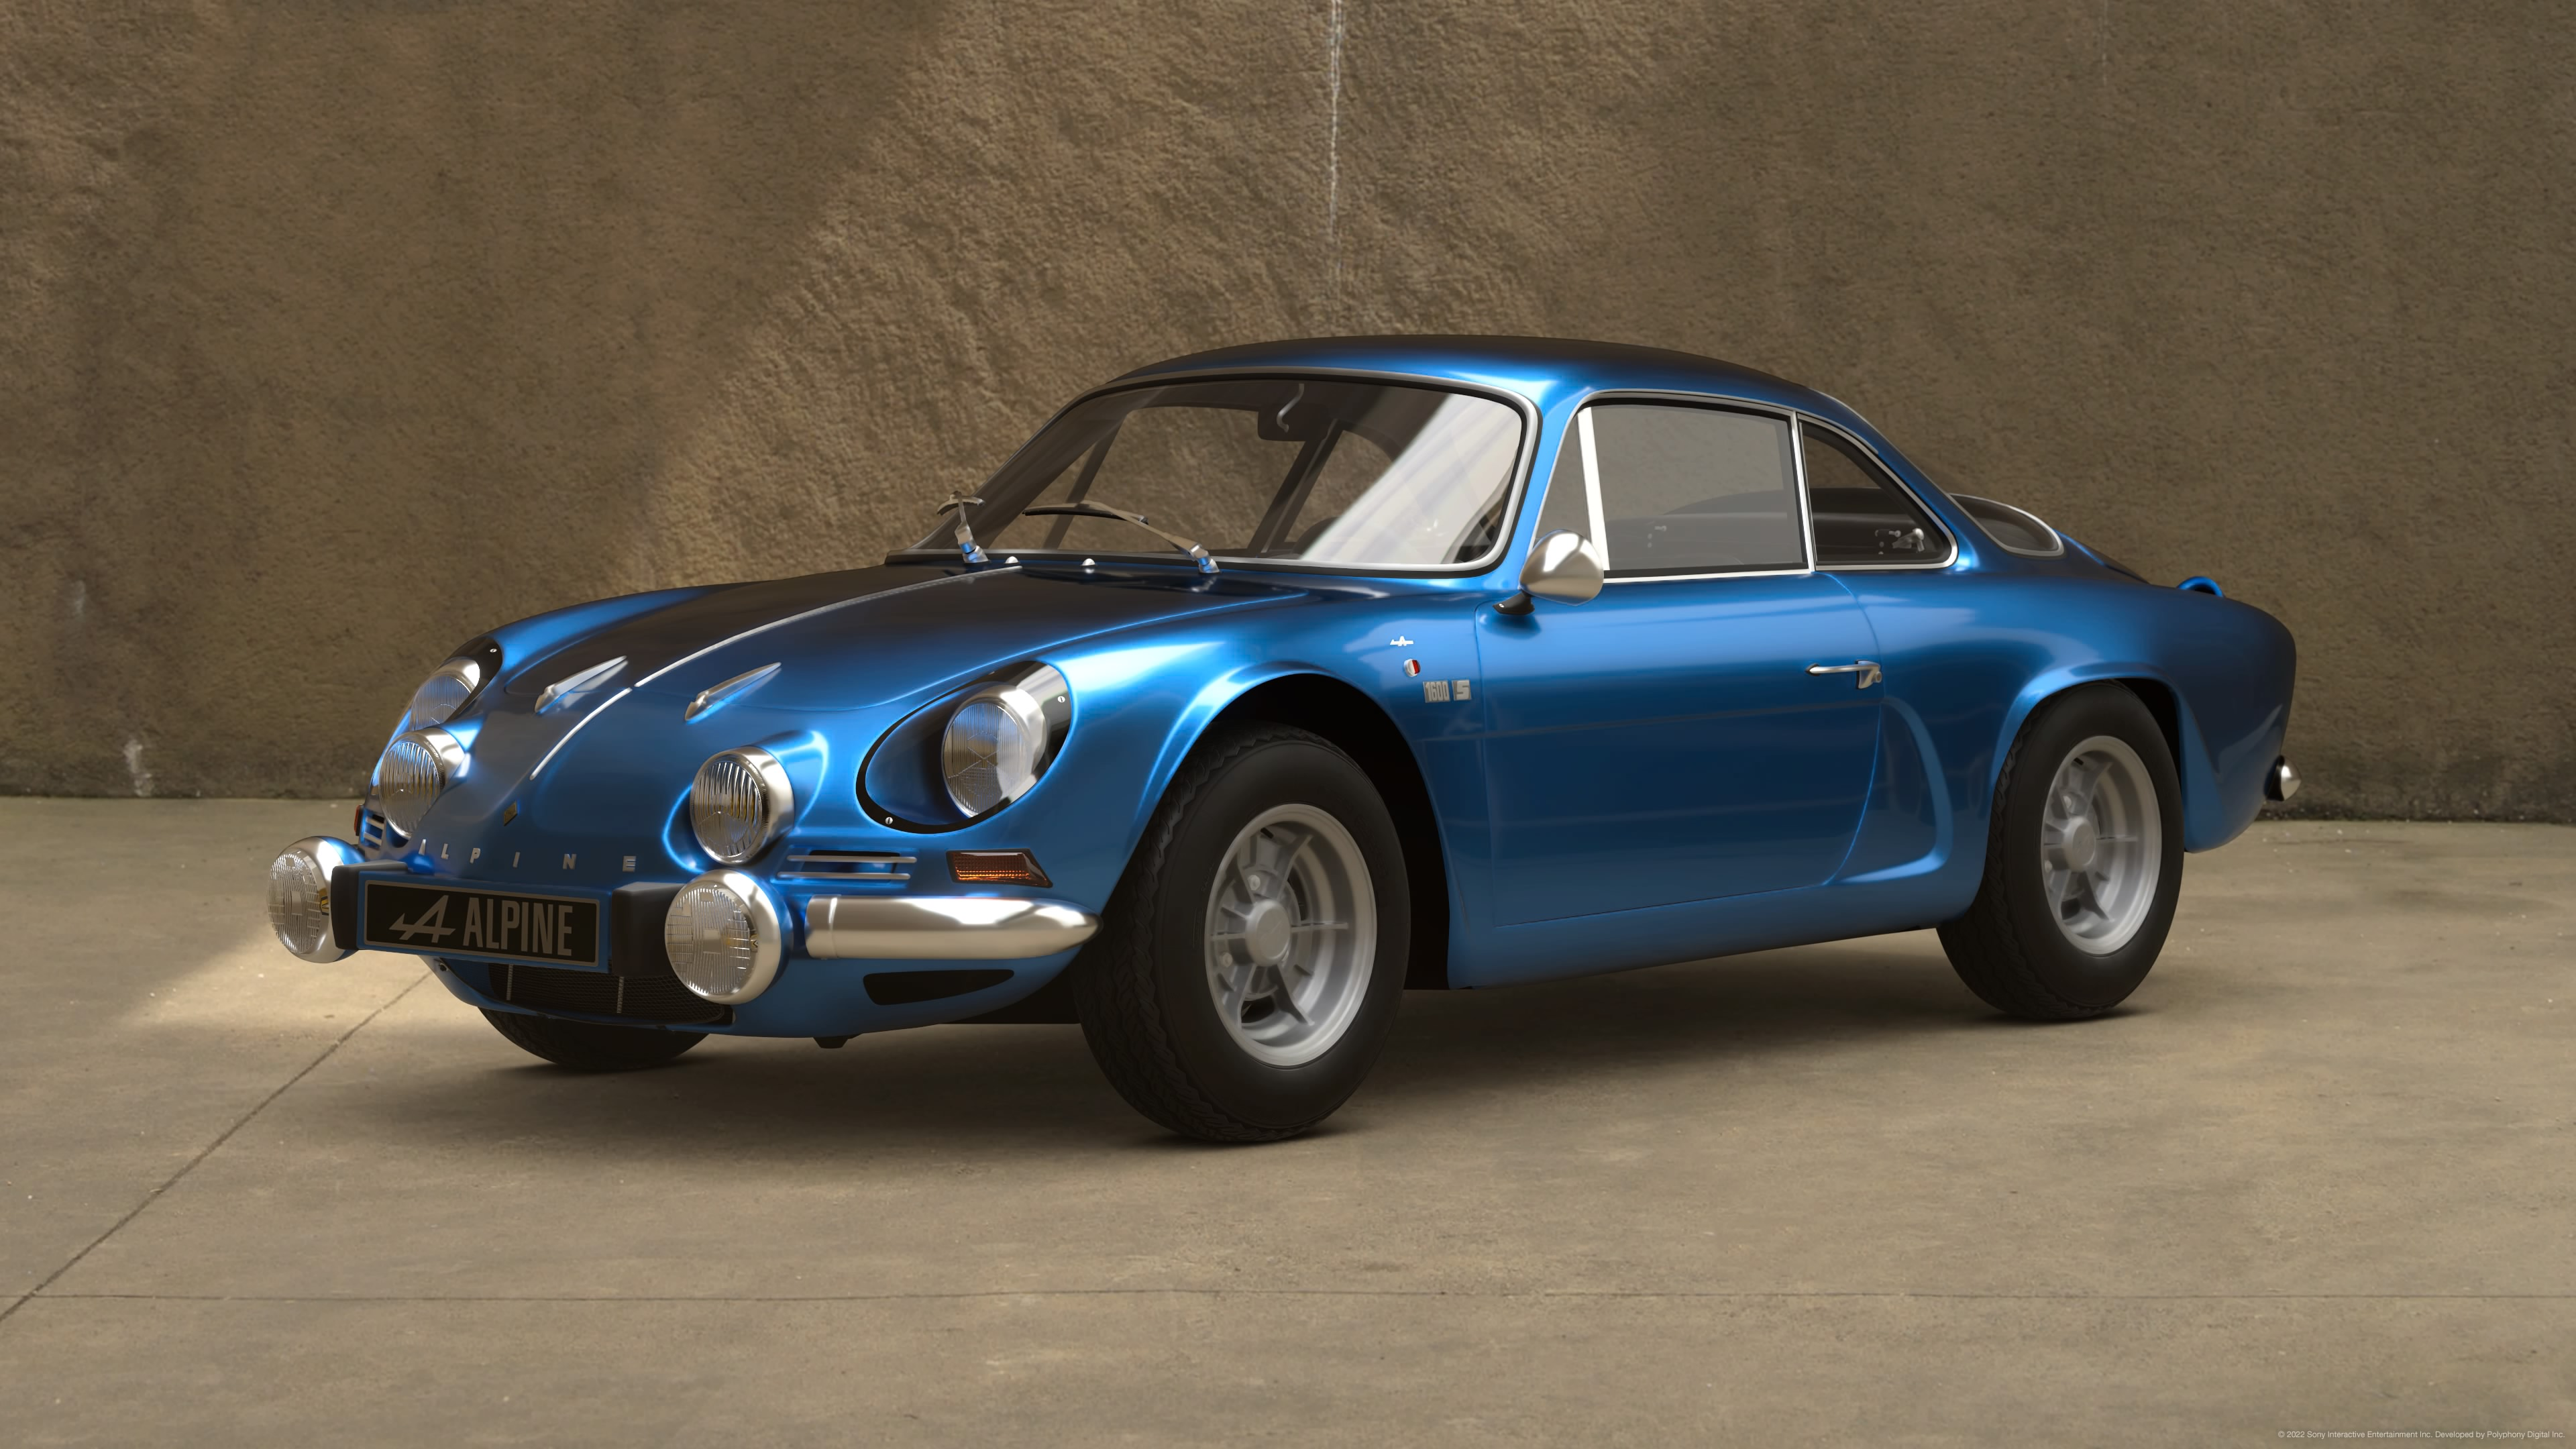 alpine a110 1600s 39 72 gran turismo wiki fandom powered by wikia. Black Bedroom Furniture Sets. Home Design Ideas